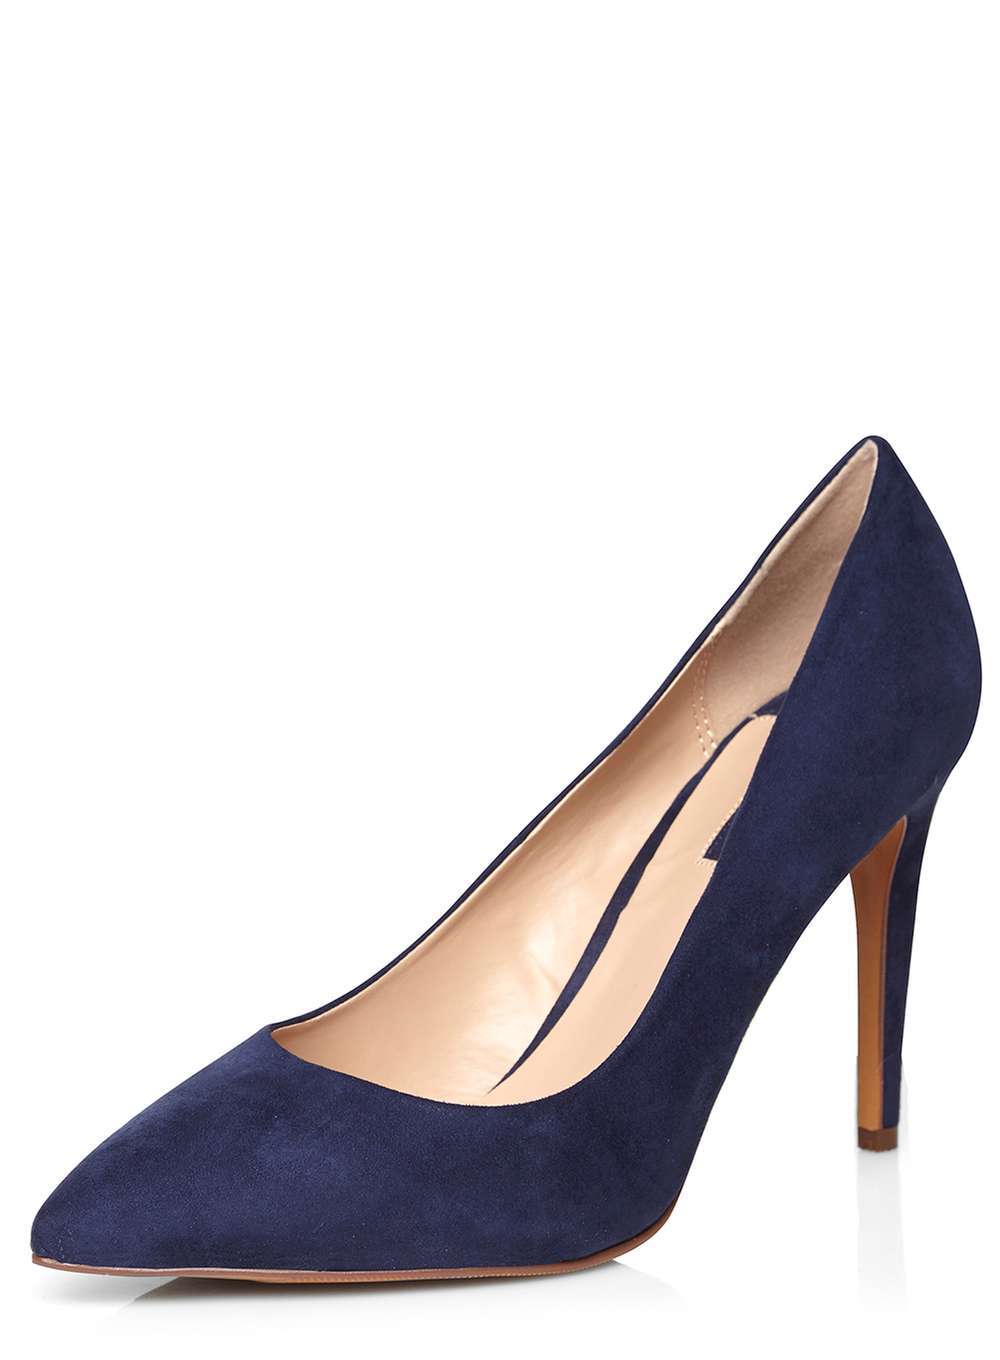 Navy court shoes with strap heels for women Pointed shoes wedding shoes Sky Walker Womens Ladies Two Tone Stiletto High Heels Pointed Toe Court Shoes Size UK by Sky_Walker_df. £ - £ Prime. Eligible for FREE UK Delivery. Some sizes/colours are Prime eligible.